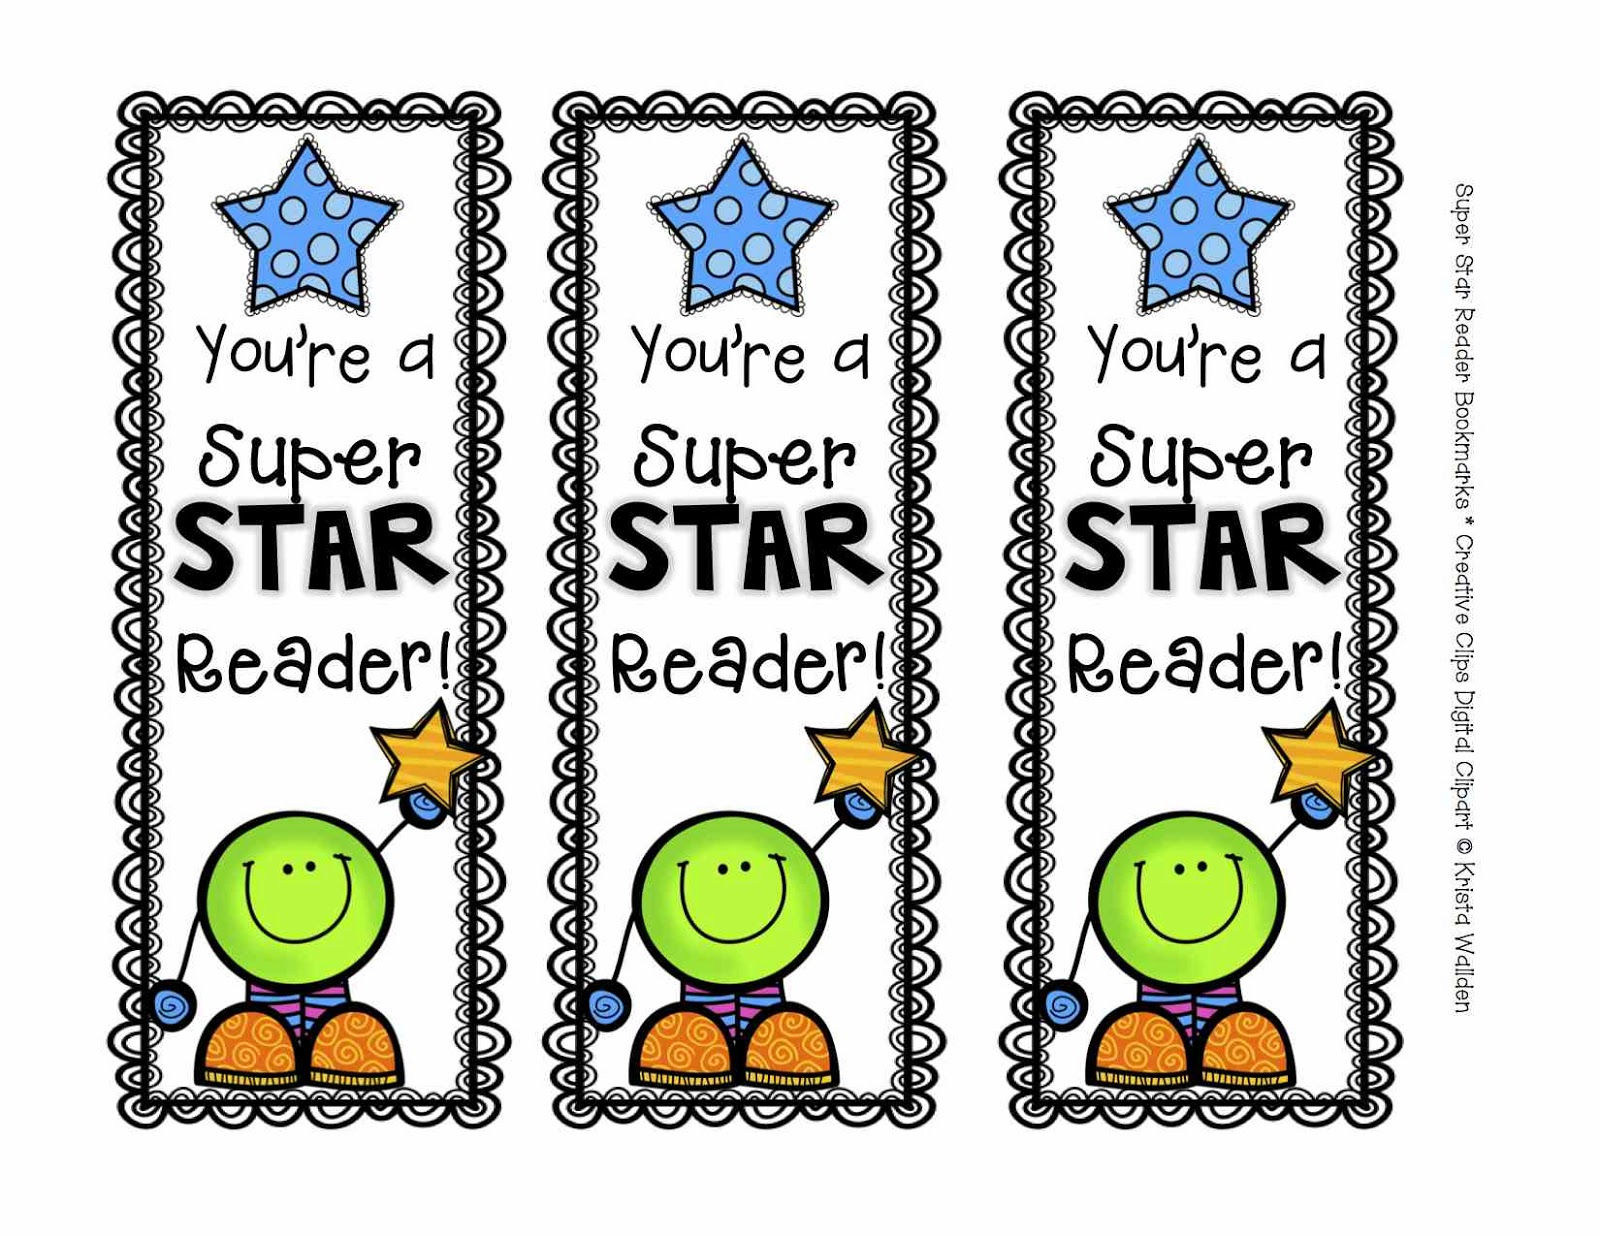 Handy image pertaining to printable bookmarks for kids